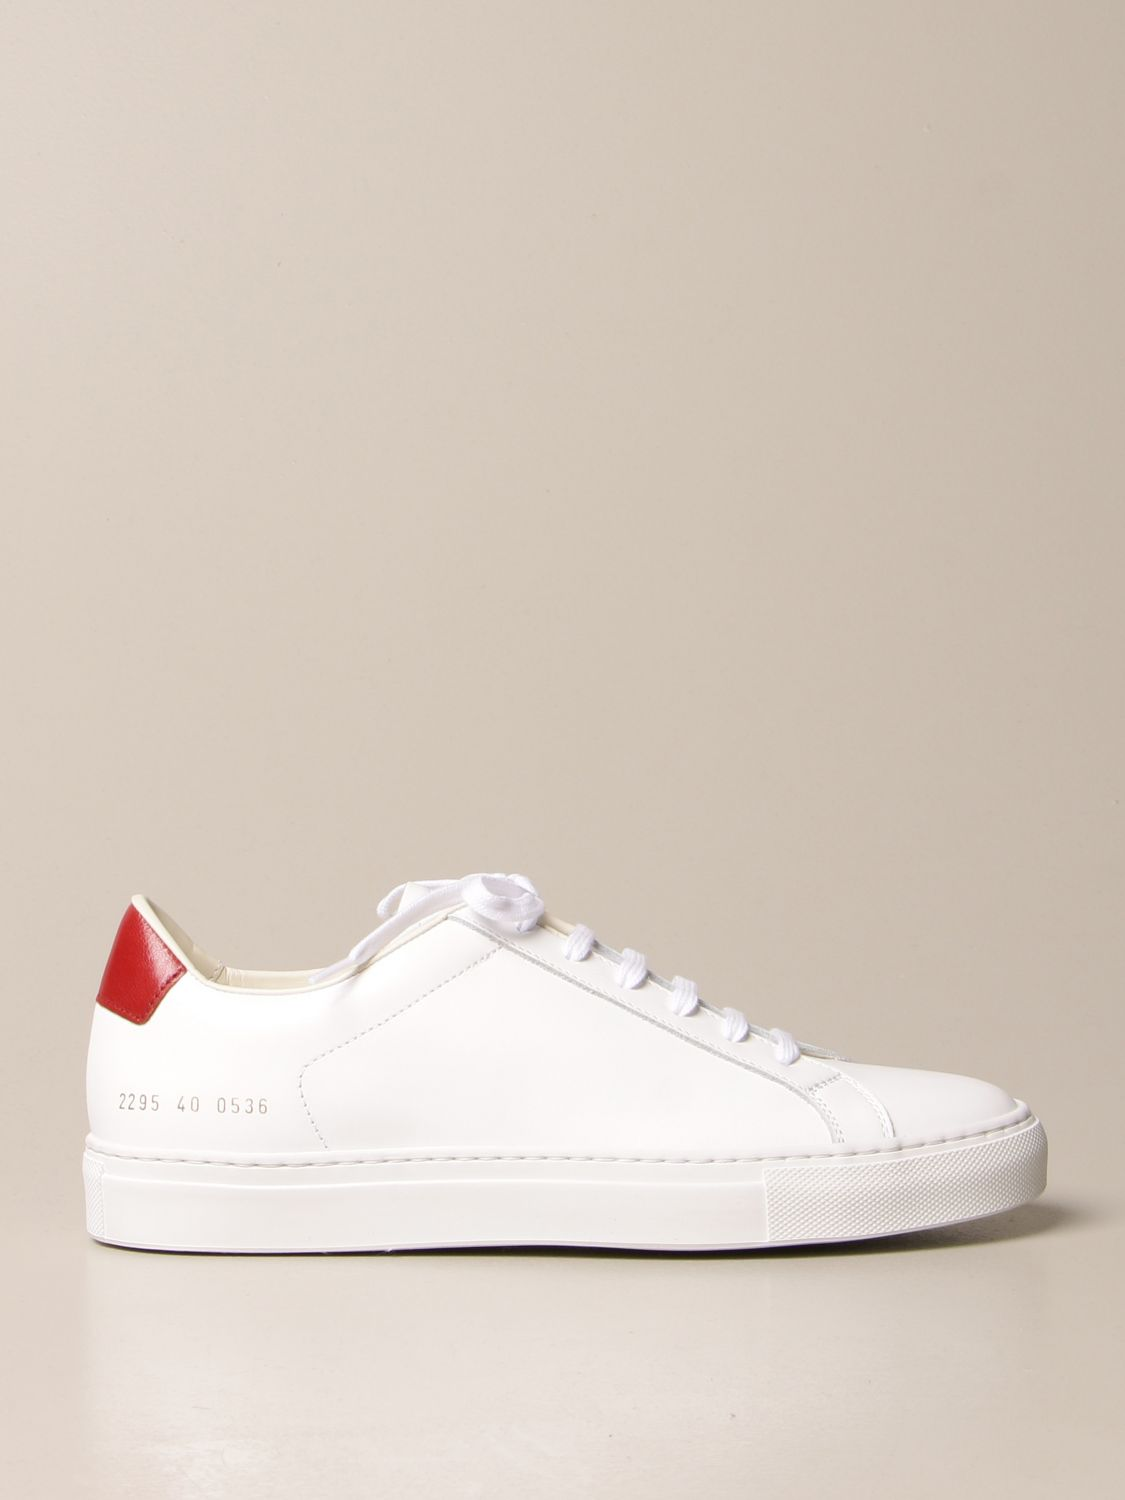 Sneakers Common Projects: Sneakers herren Common Projects weiss 2 1